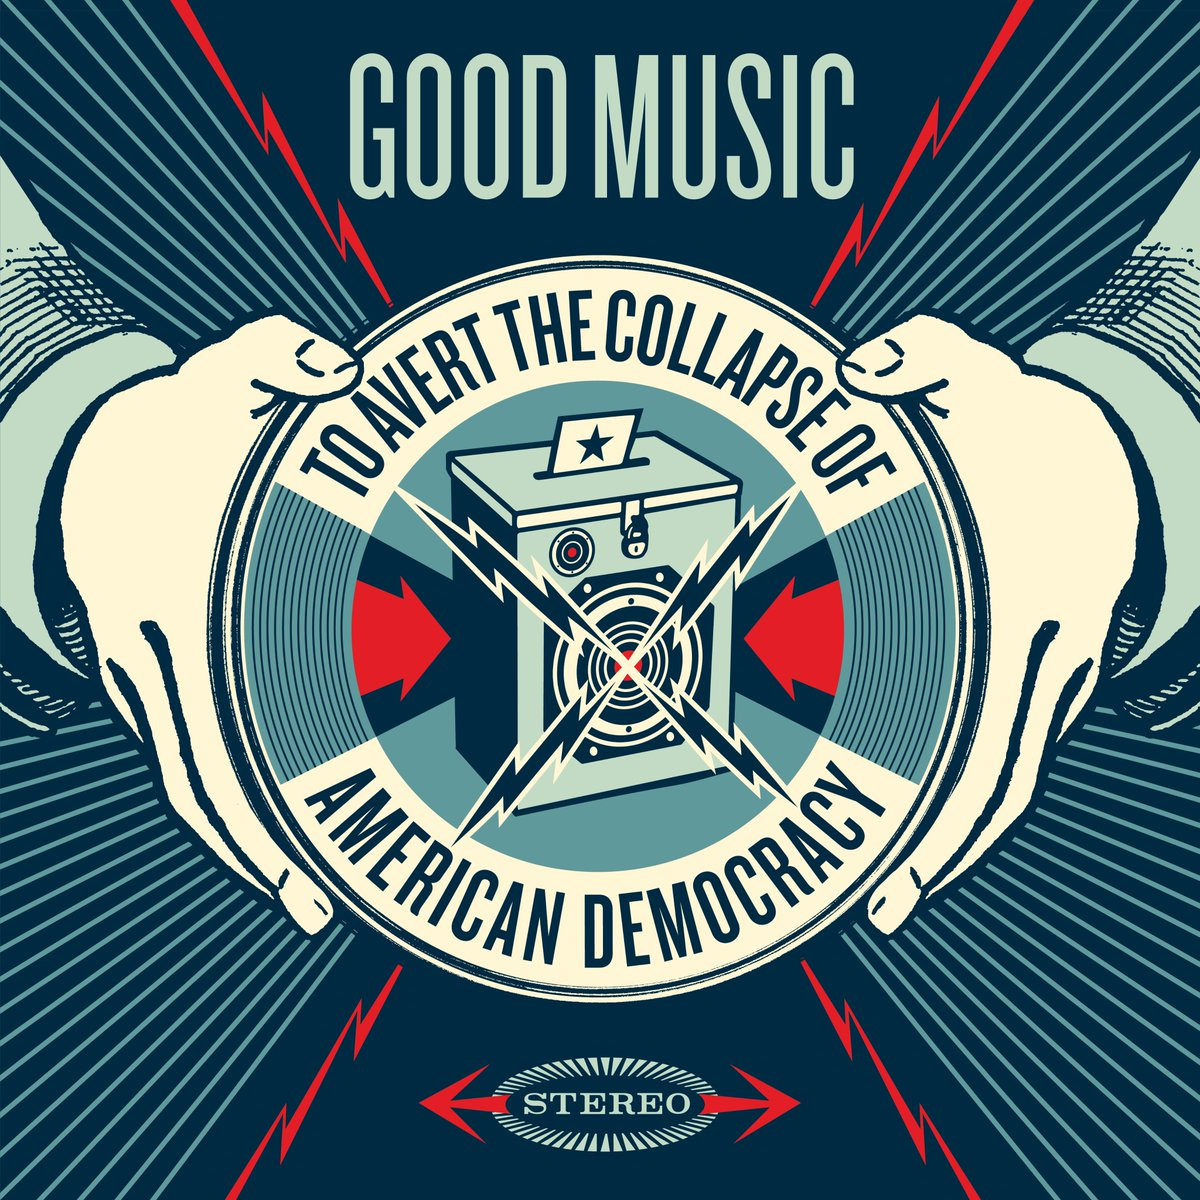 'Good Music To Avert The Collapse Of American Democracy' – a fundraising compilation featuring a previously unreleased The Decemberists track will be available for 24 hours ONLY this Friday on @bandcamp! Proceeds go to @fairfightaction --> https://t.co/9lSivS1ize https://t.co/bKRas4ewEX